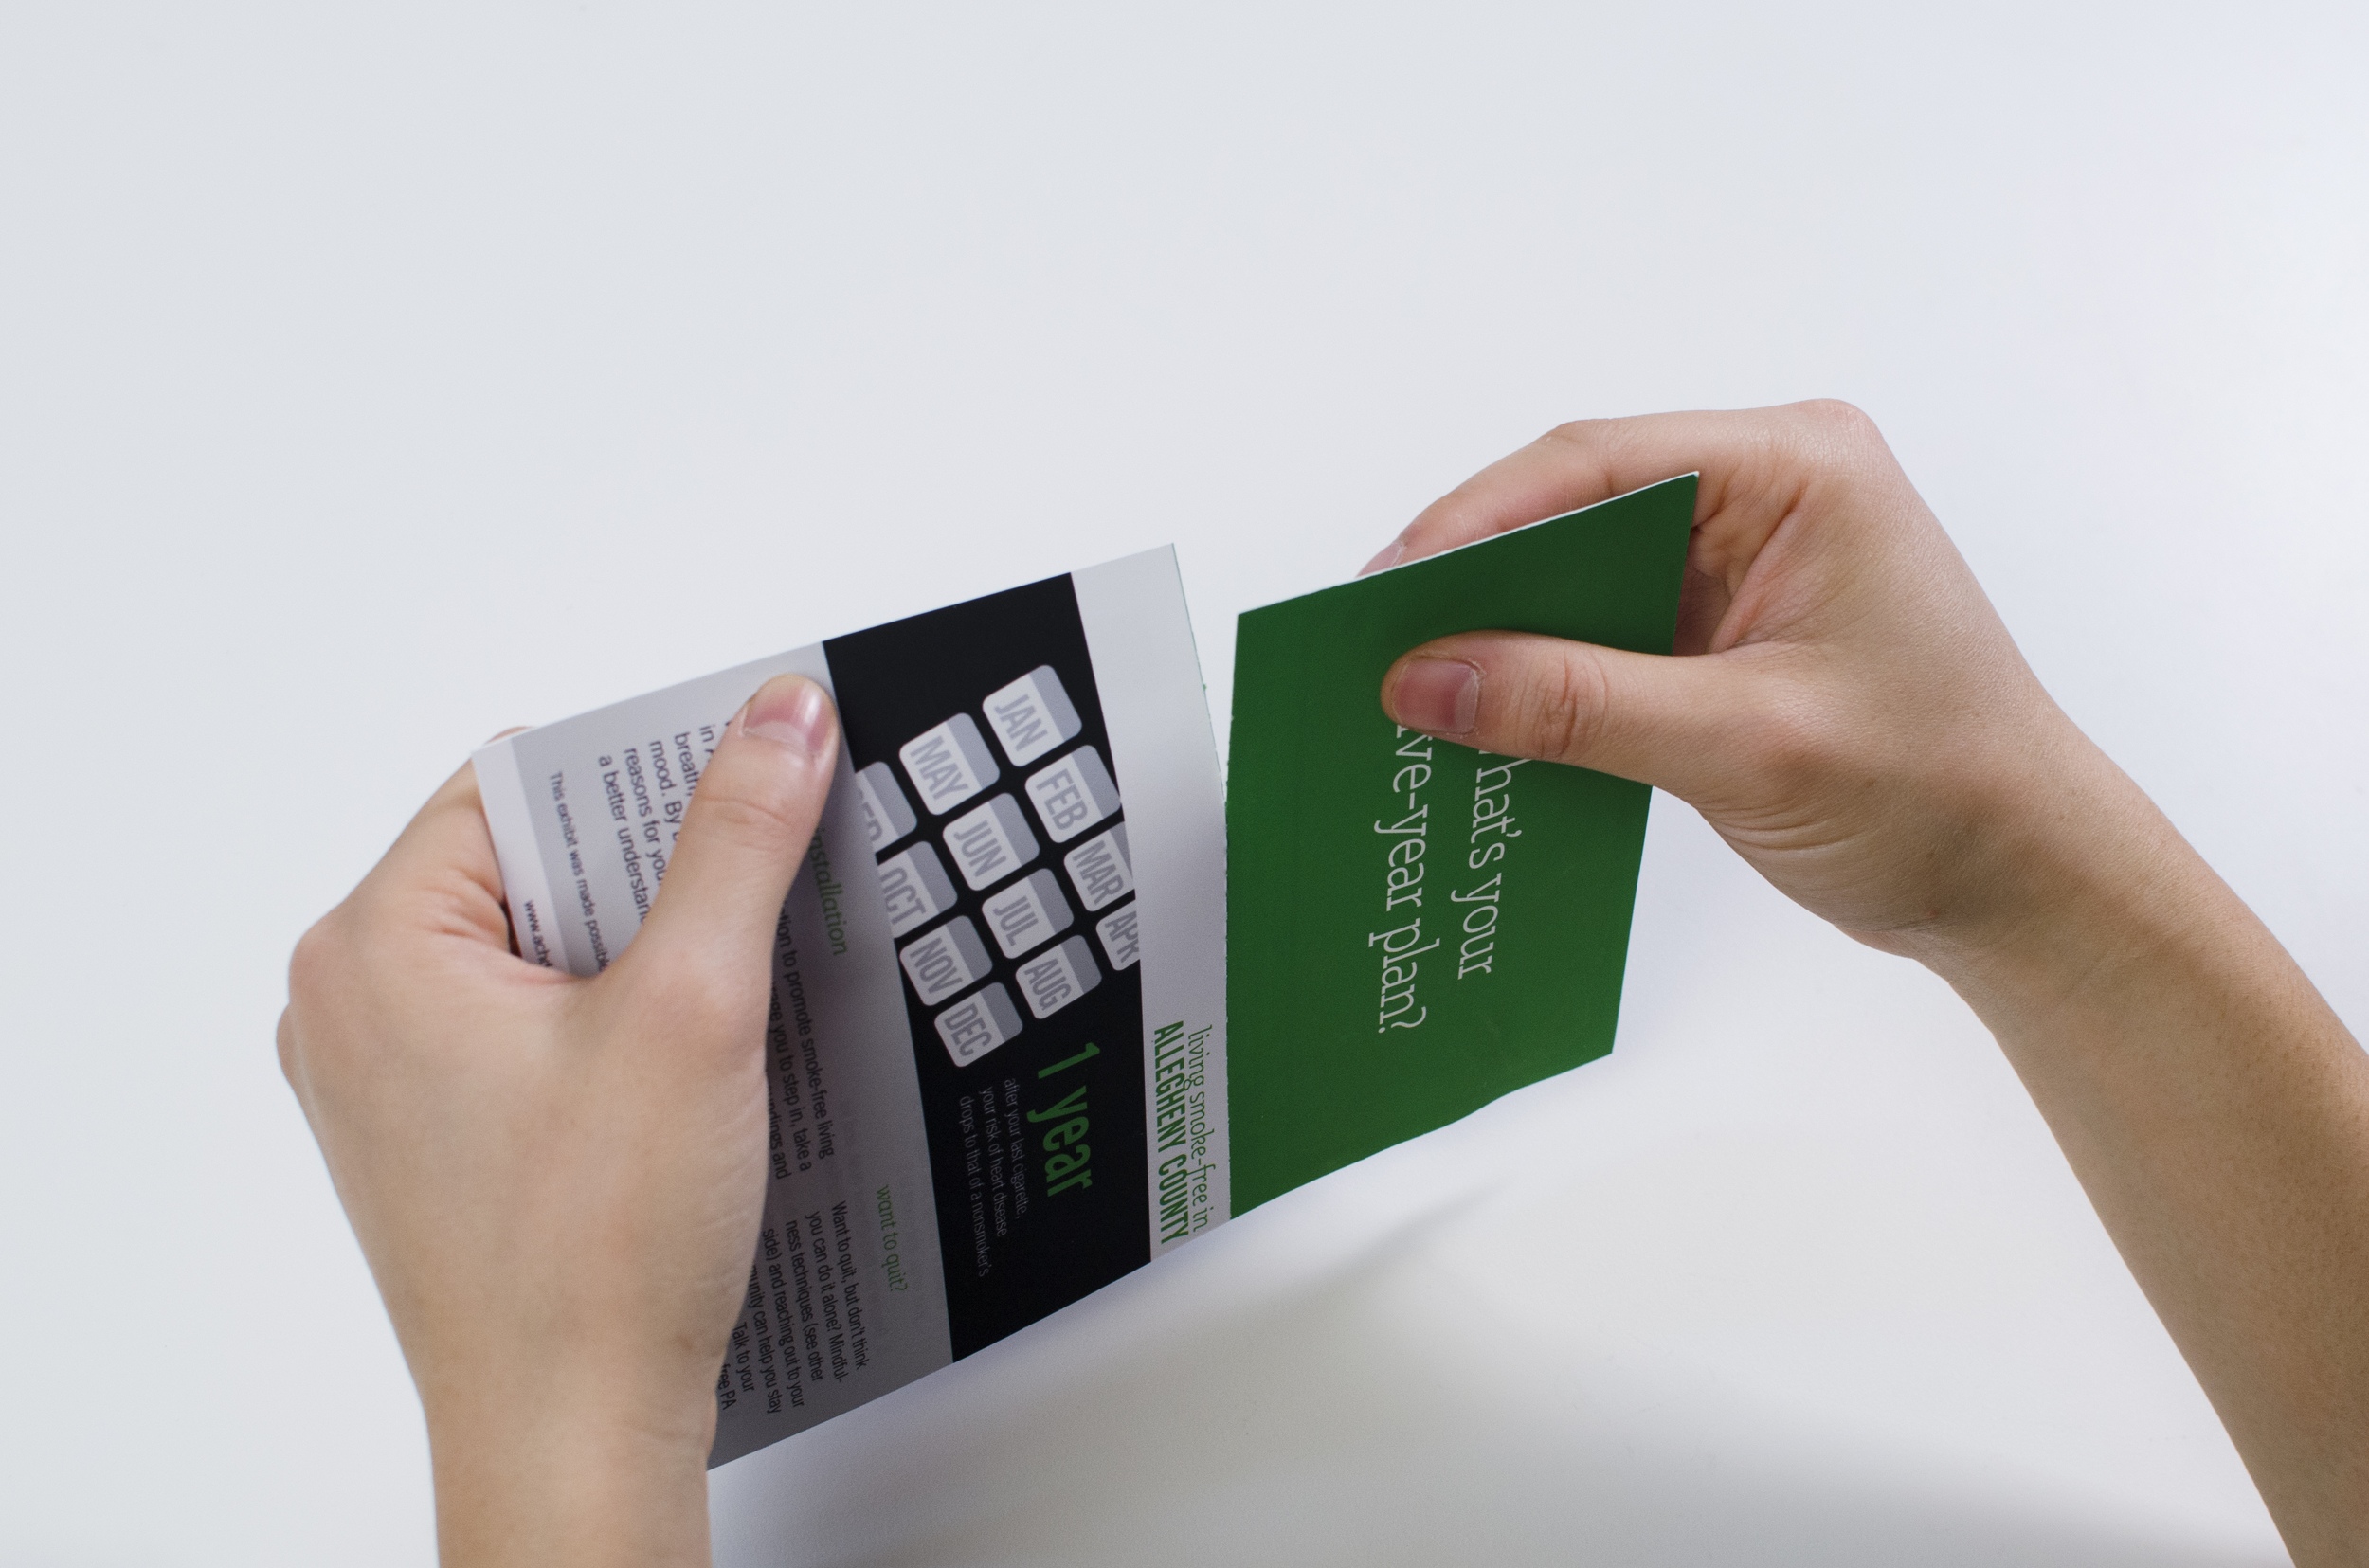 The bottom half of the pamphlet is in the shape of a postcard to add value to the printed piece and to extend a participant's interaction with the art installation.